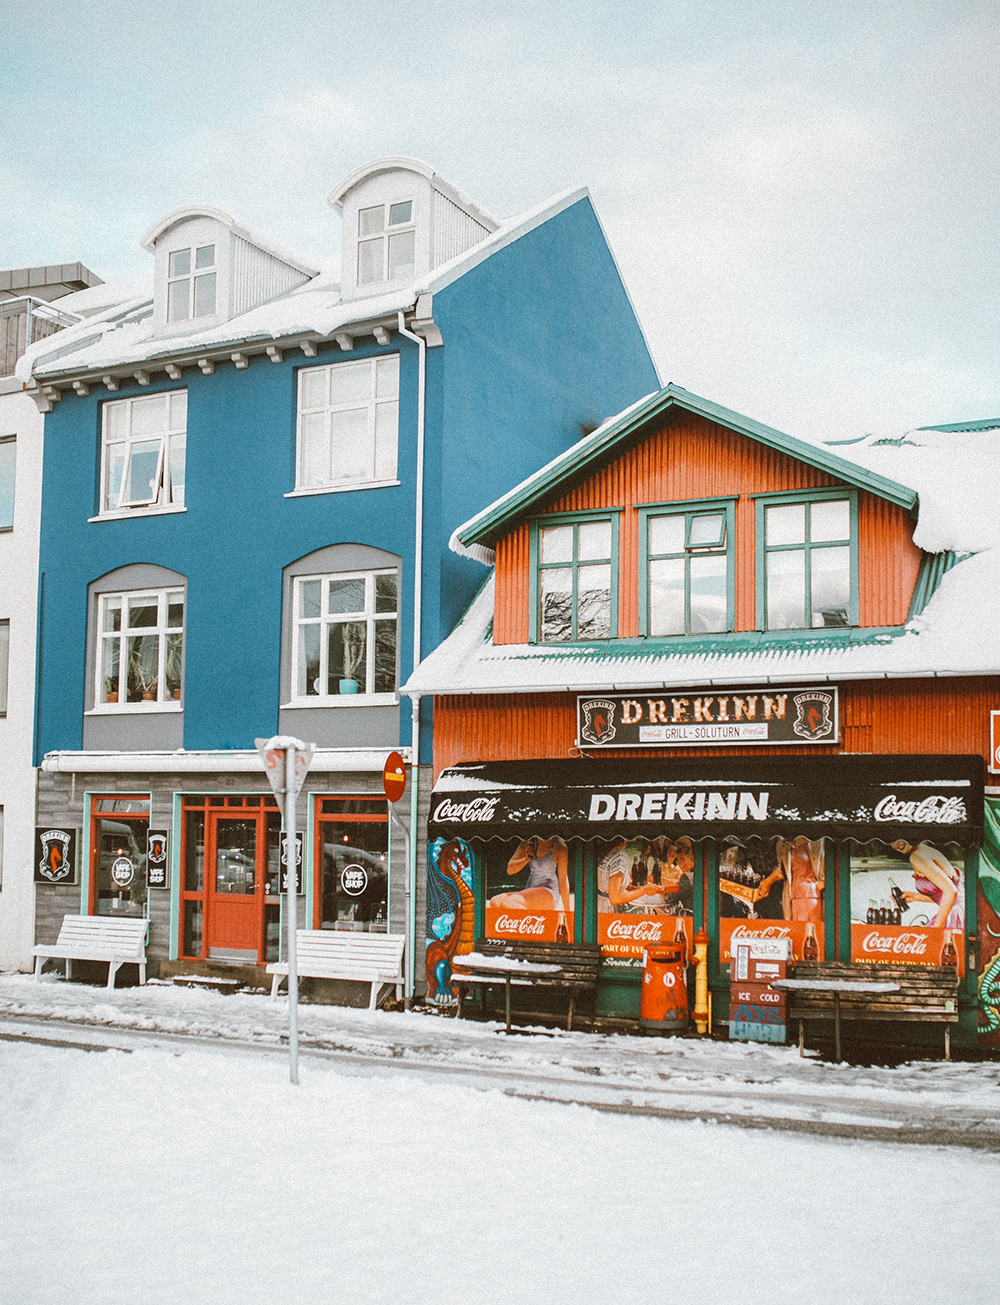 livvyland-blog-olivia-watson-travel-lifestyle-blogger-iceland-road-trip-what-to-do-pack-reykjavik-noken-travel-guide-5